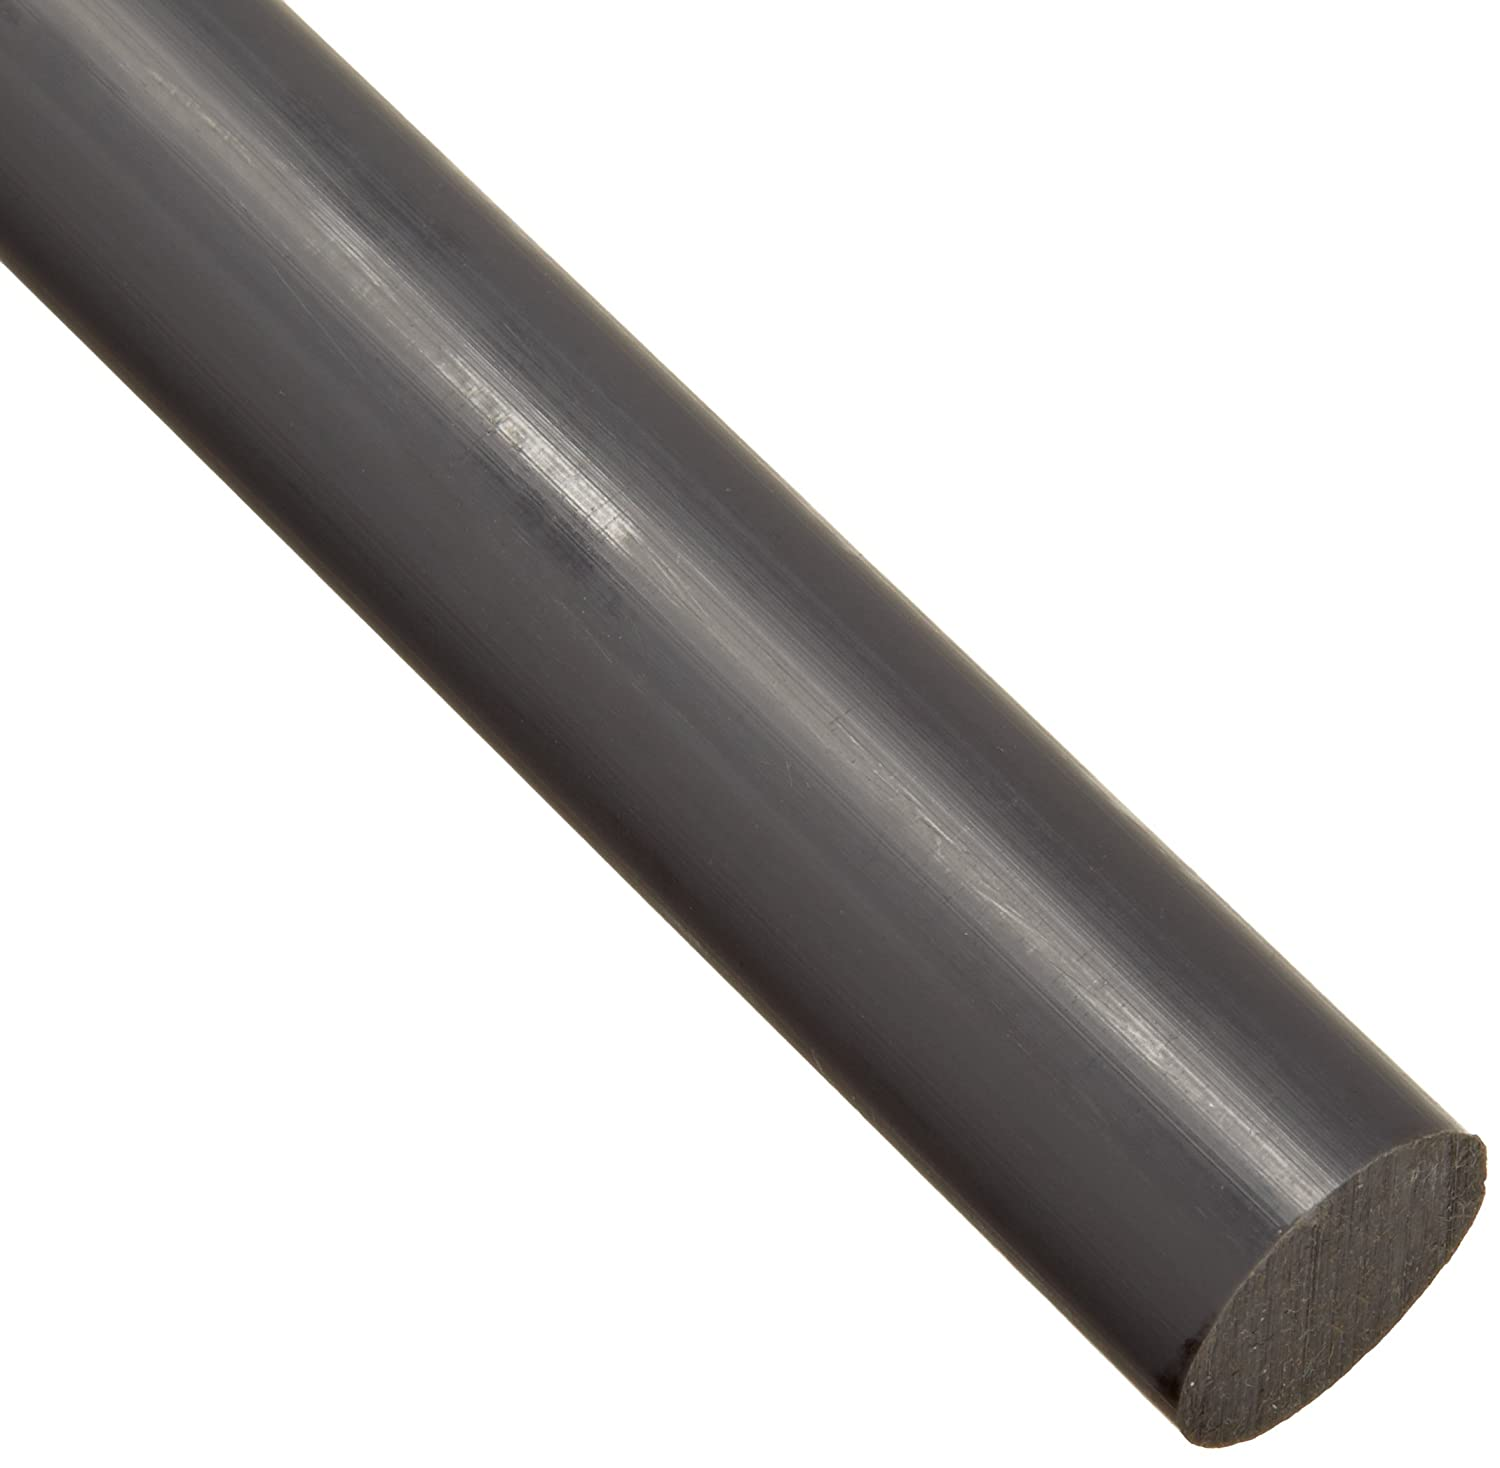 "6/"" Diameter Gray PVC Type 1 Plastic Rod-Priced Per Foot-Cut to Size!"